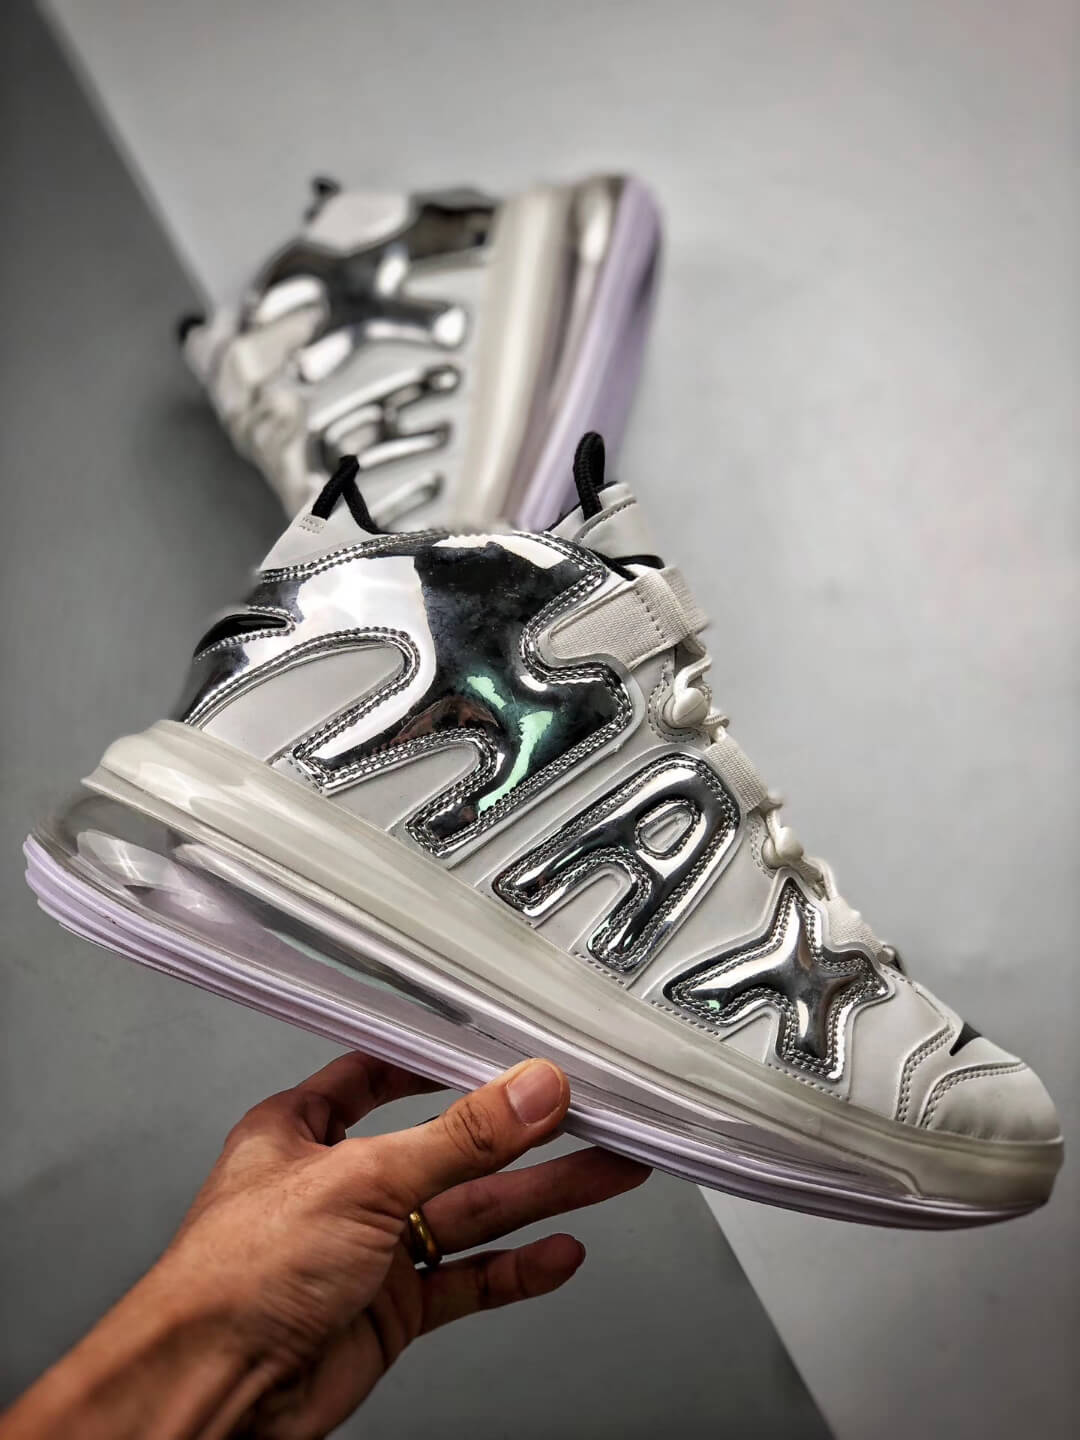 The Nike Air More Uptempo 720 QS 1 White Chrome Black Basketball Sneaker Air Max 720 Repshoes 02